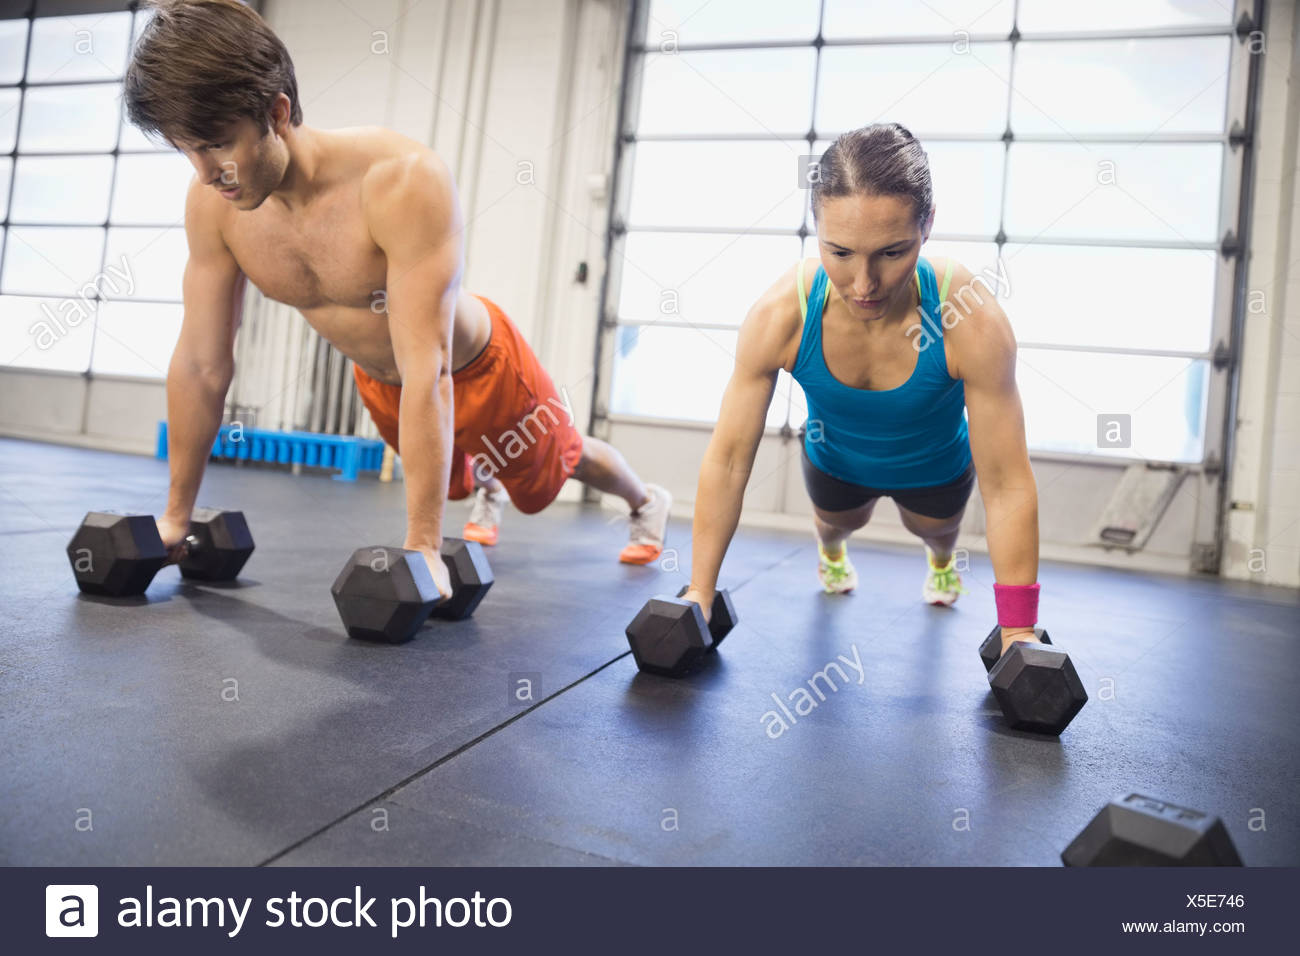 Pushup Stock Photos & Pushup Stock Images - Alamy